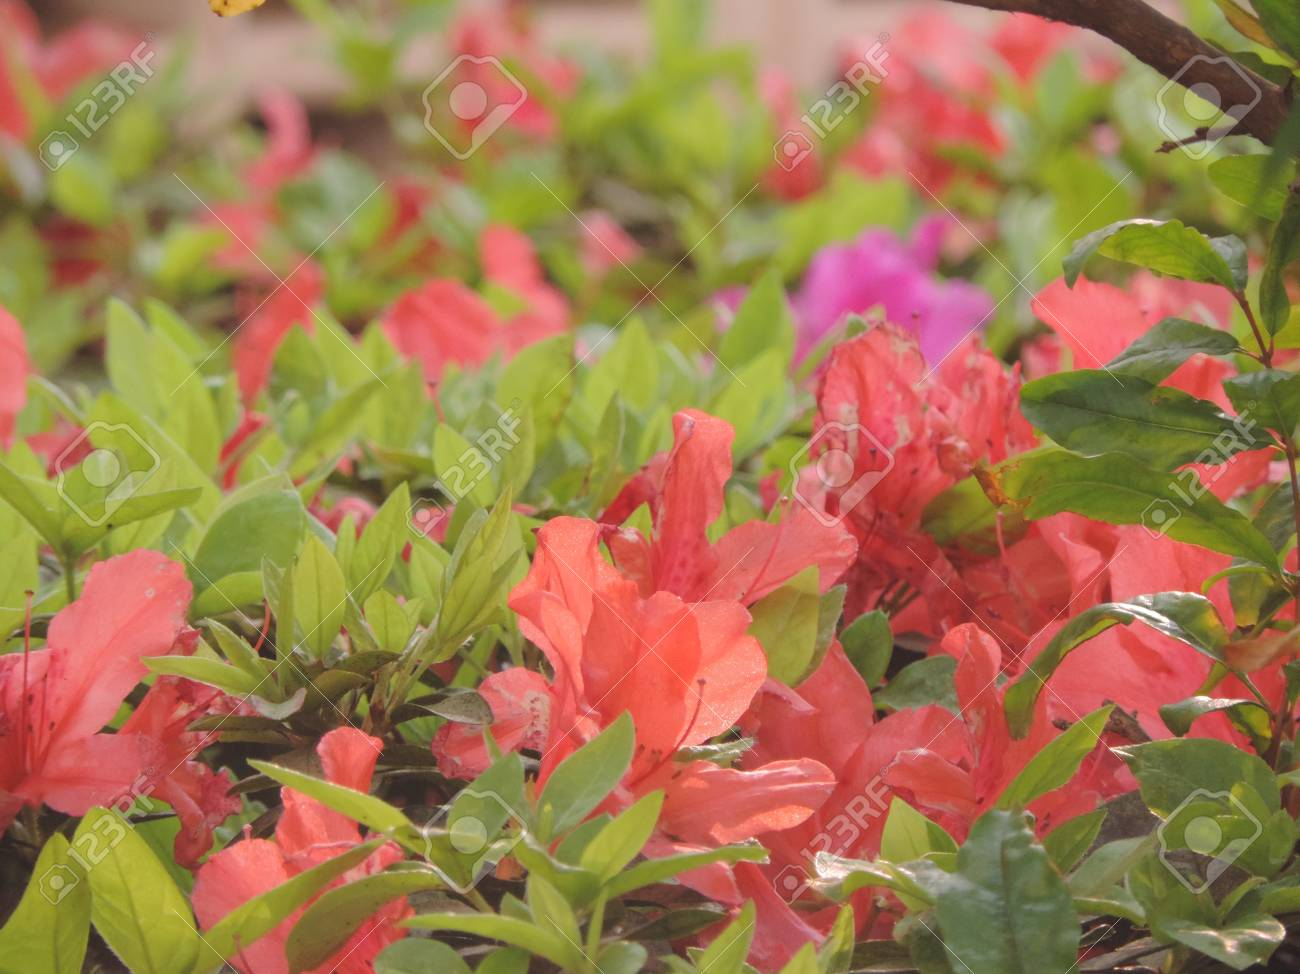 Salmon Colored Flowers In The Green Foliage Stock Photo, Picture And ...